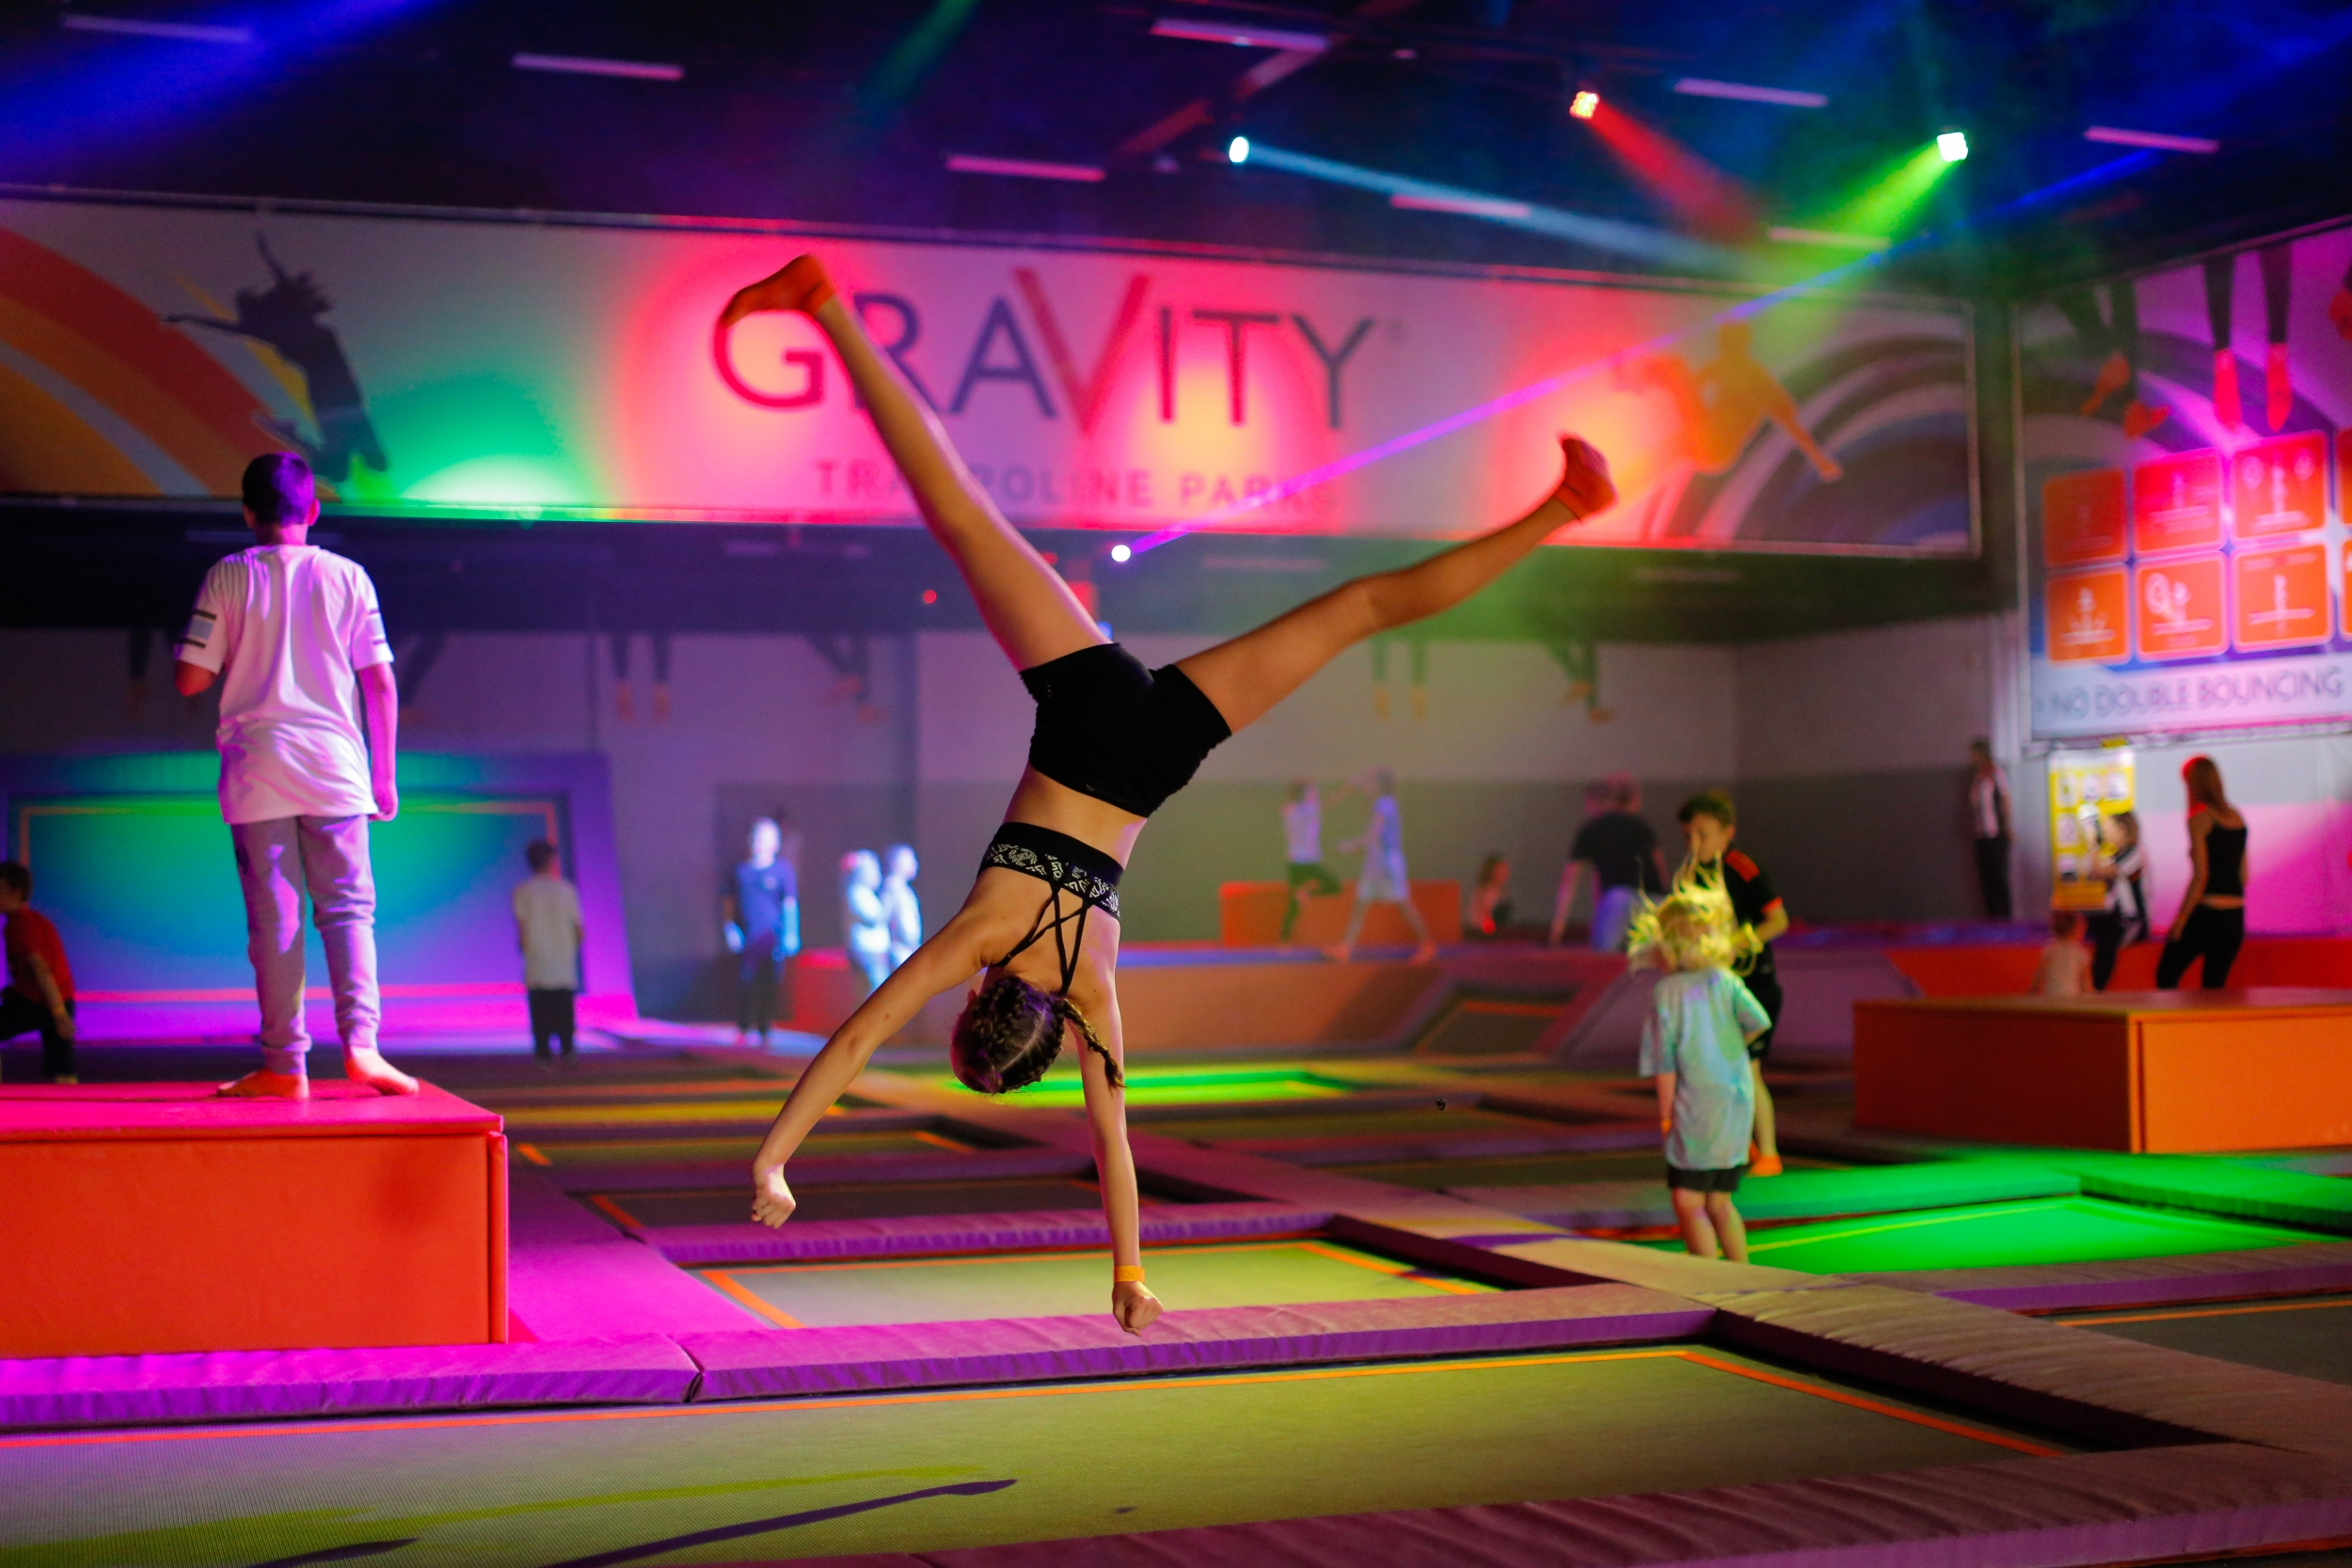 Gravity Active Entertainment becomes member of theBritish Franchise Association (bfa)